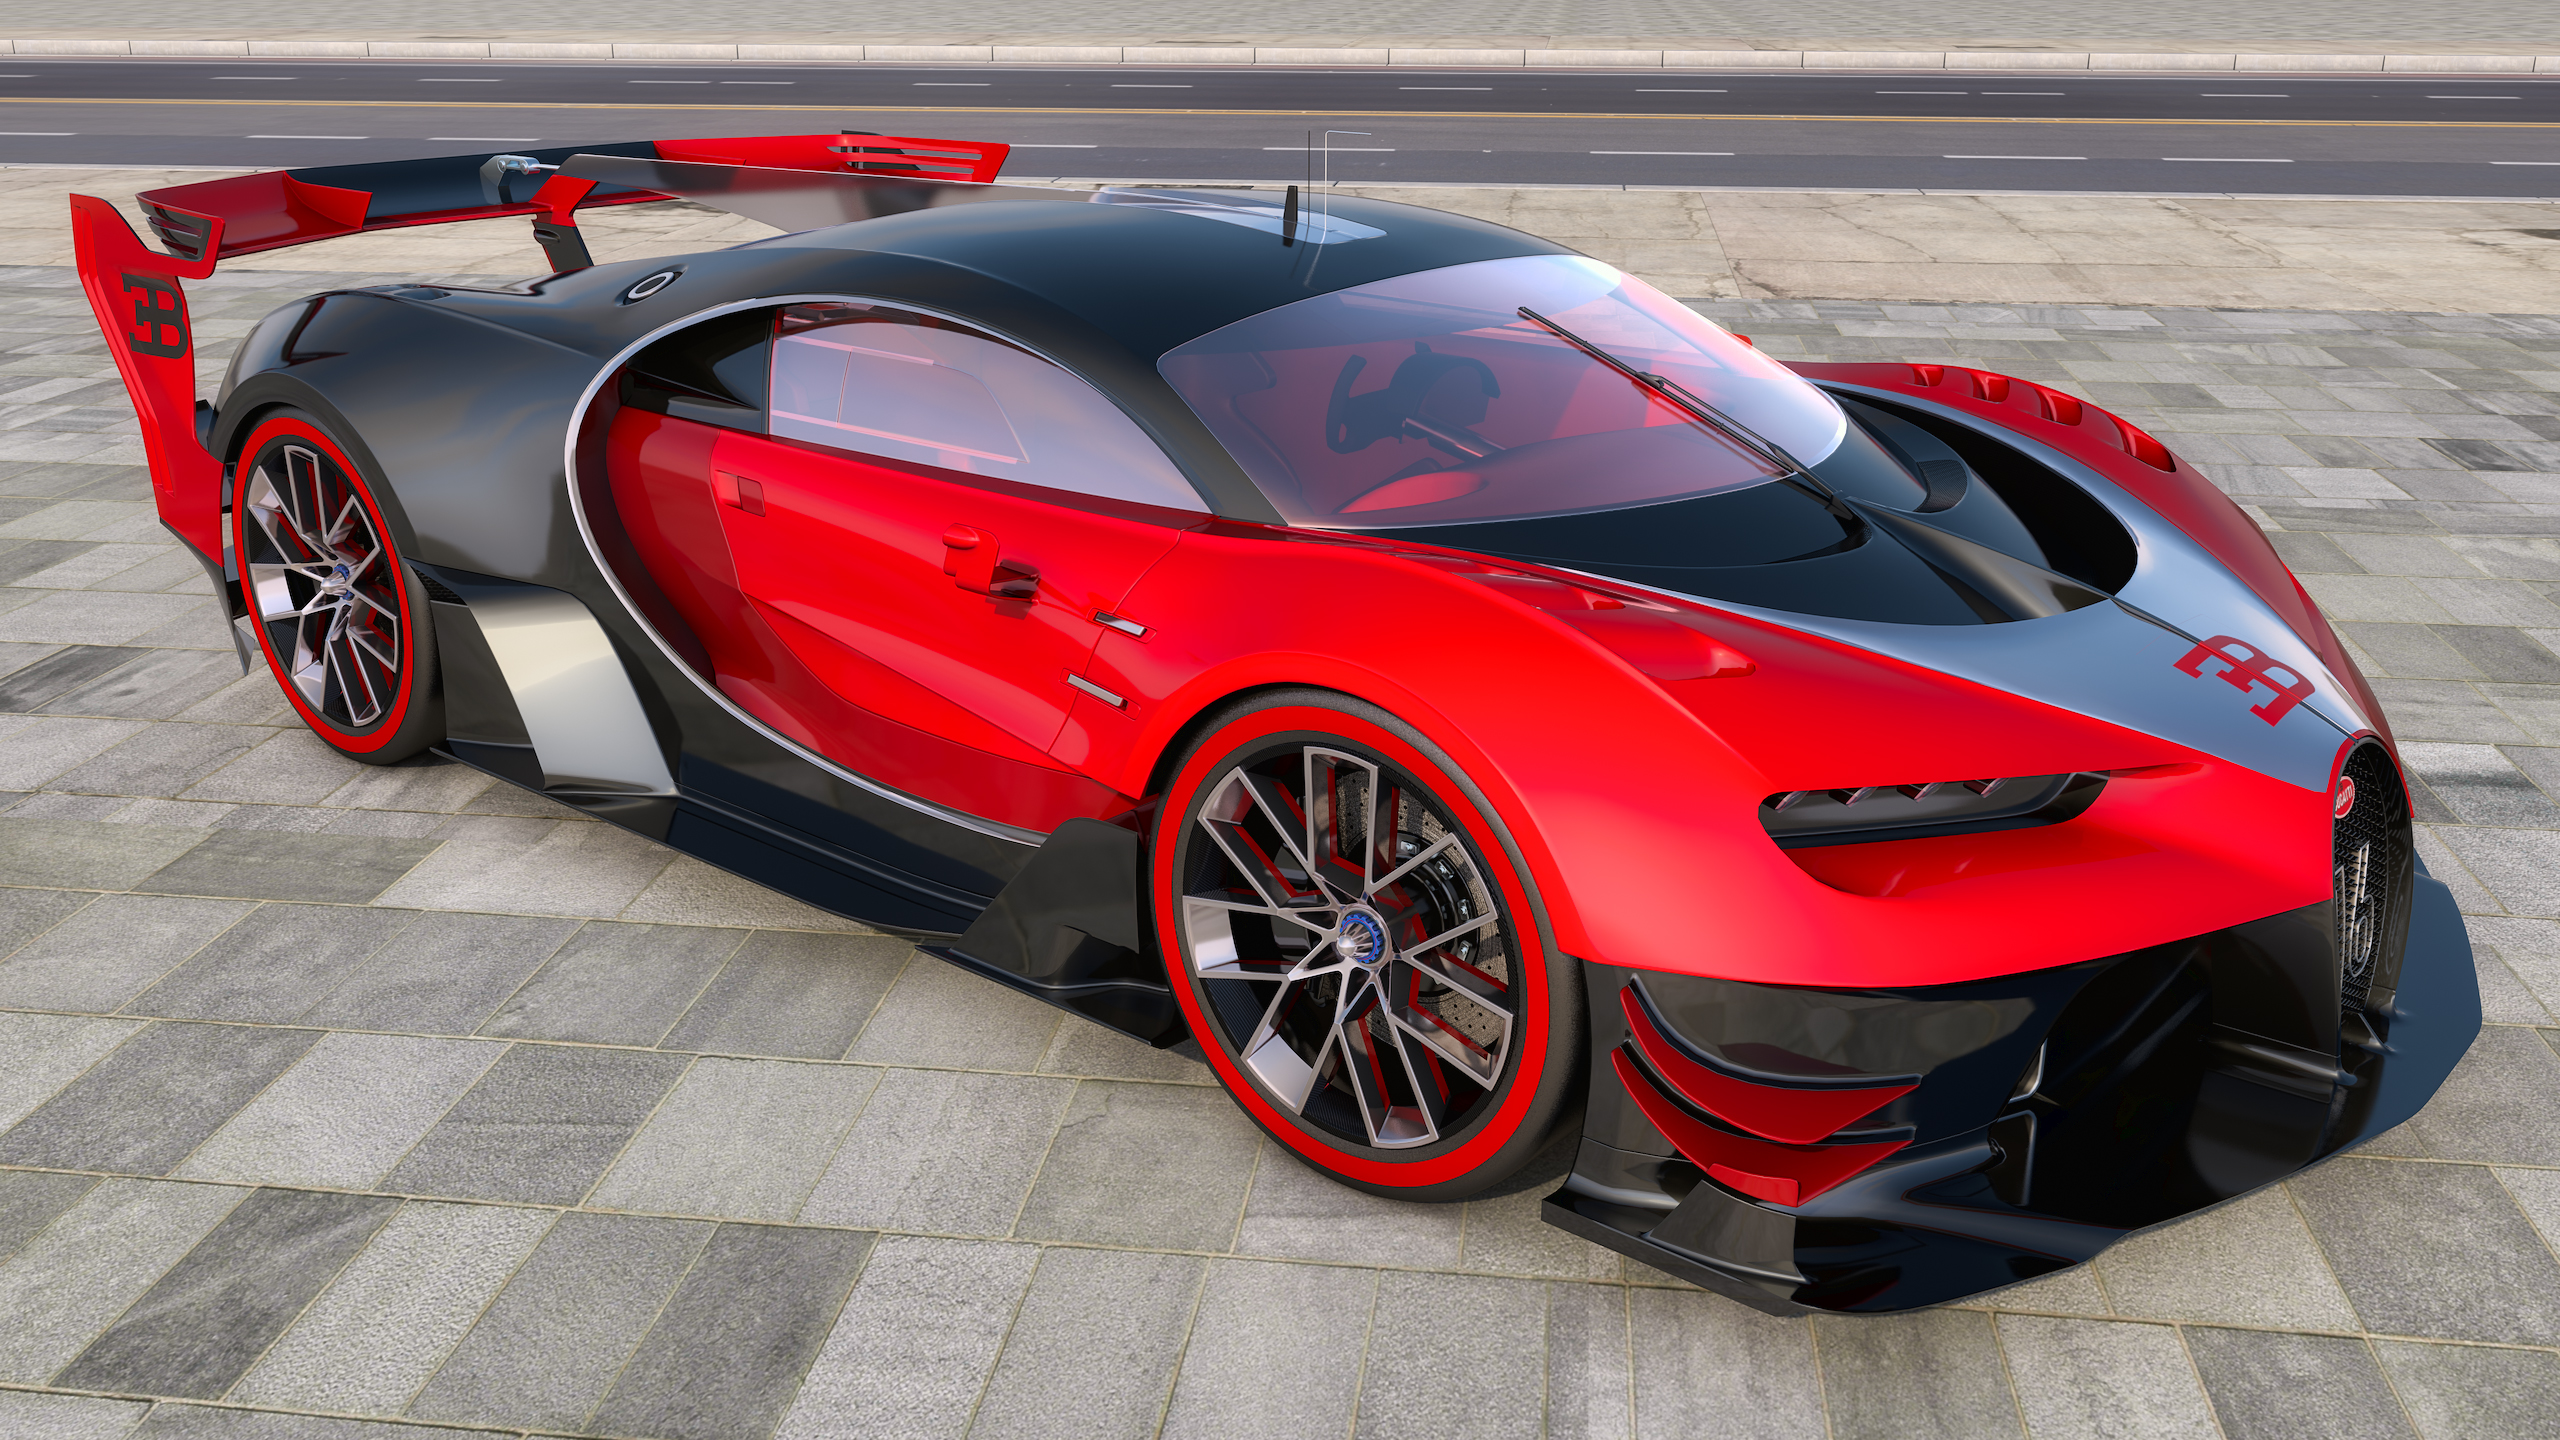 2015 Bugatti Vision Gran Turismo Concept by SamCurry on ...